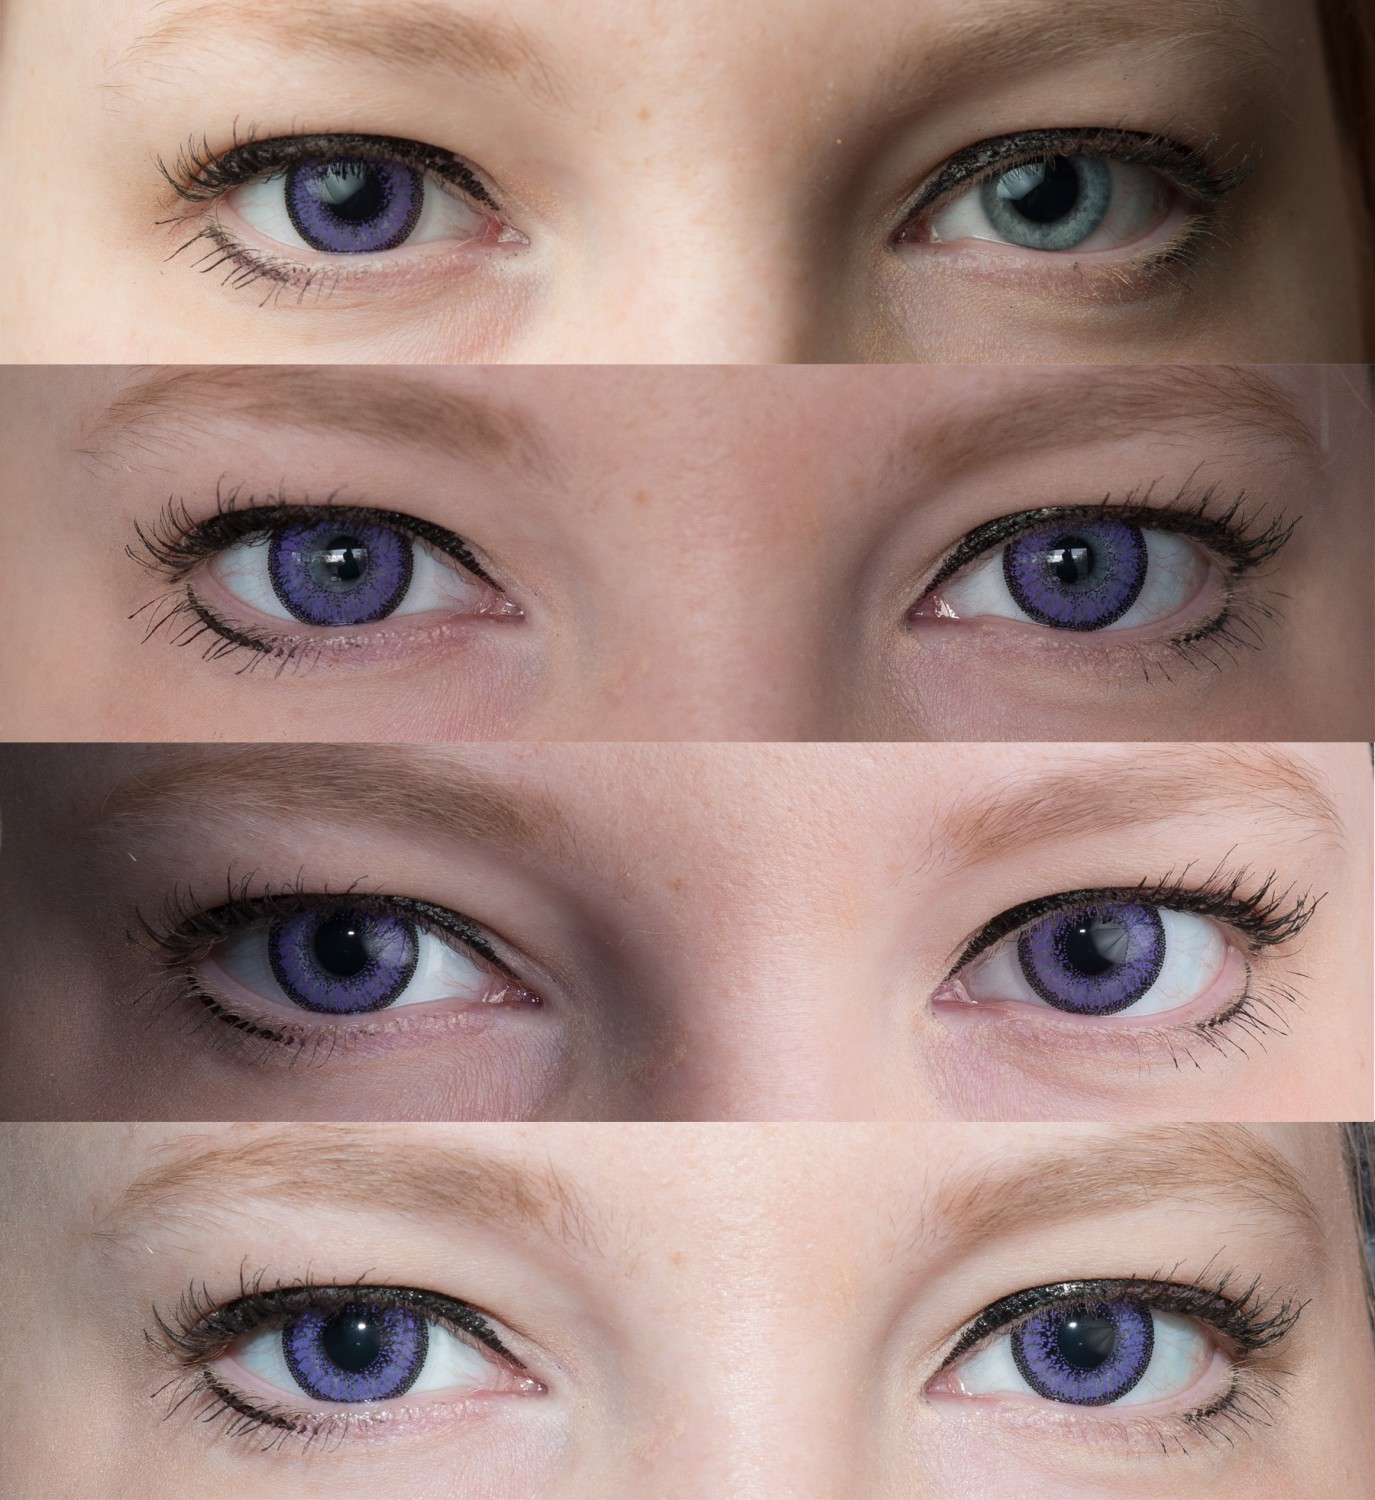 Contacts: How To Safely Buy And Wear Cosplay Contacts And Circle